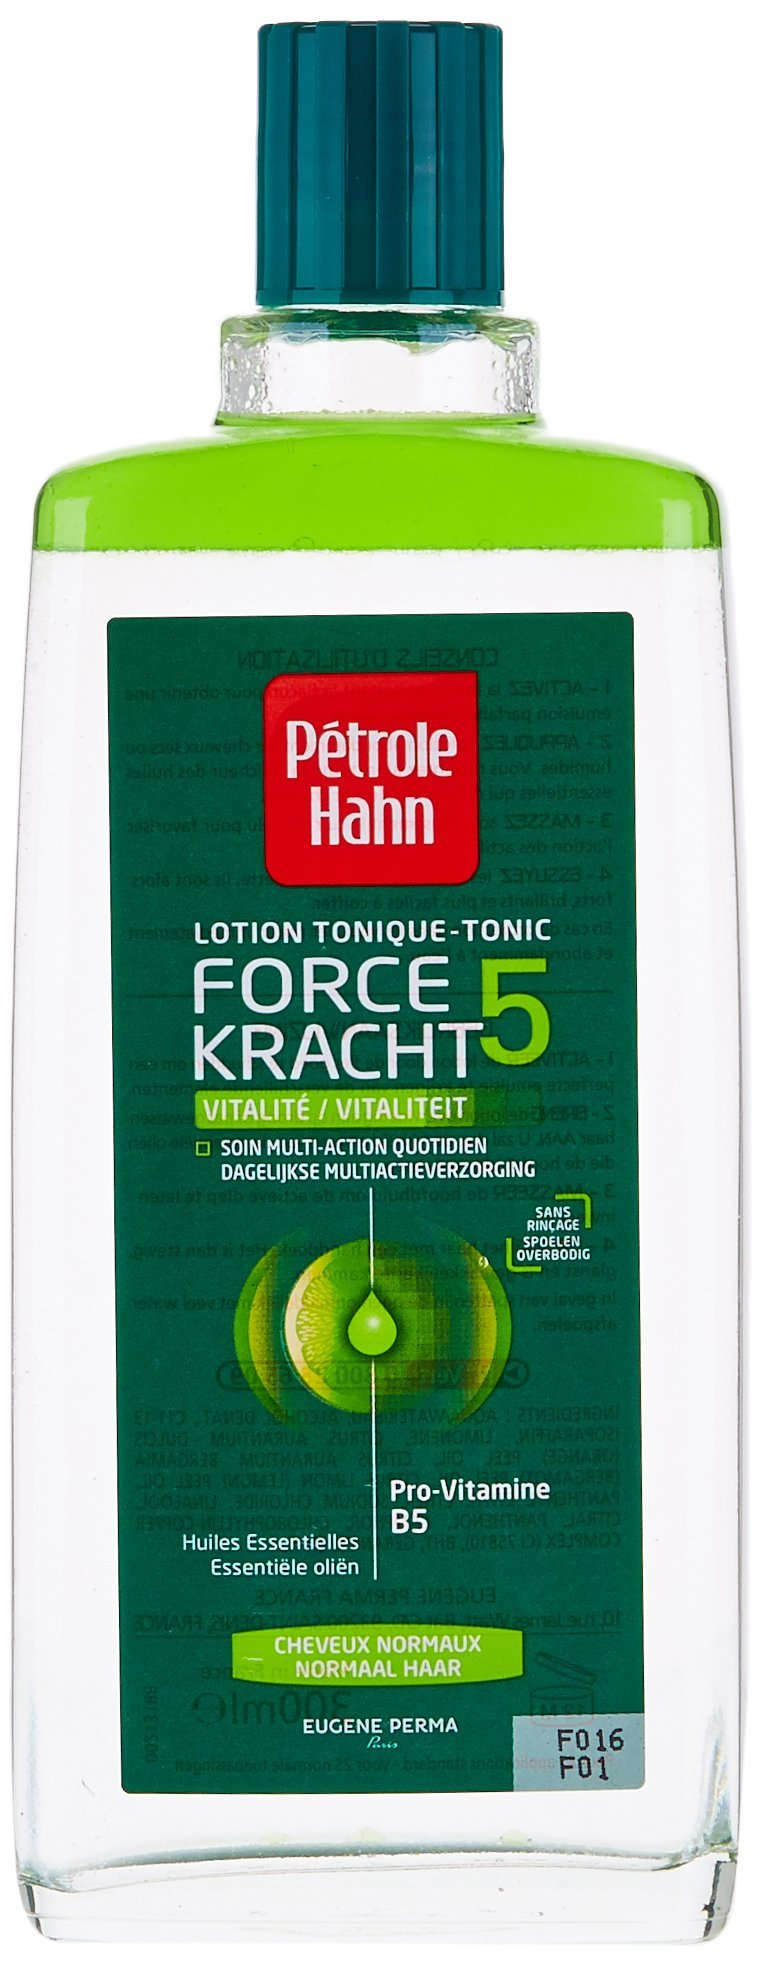 Petrole Hahn Force 5 Vitality Tonic Lotion for Normal Hair 300 ml